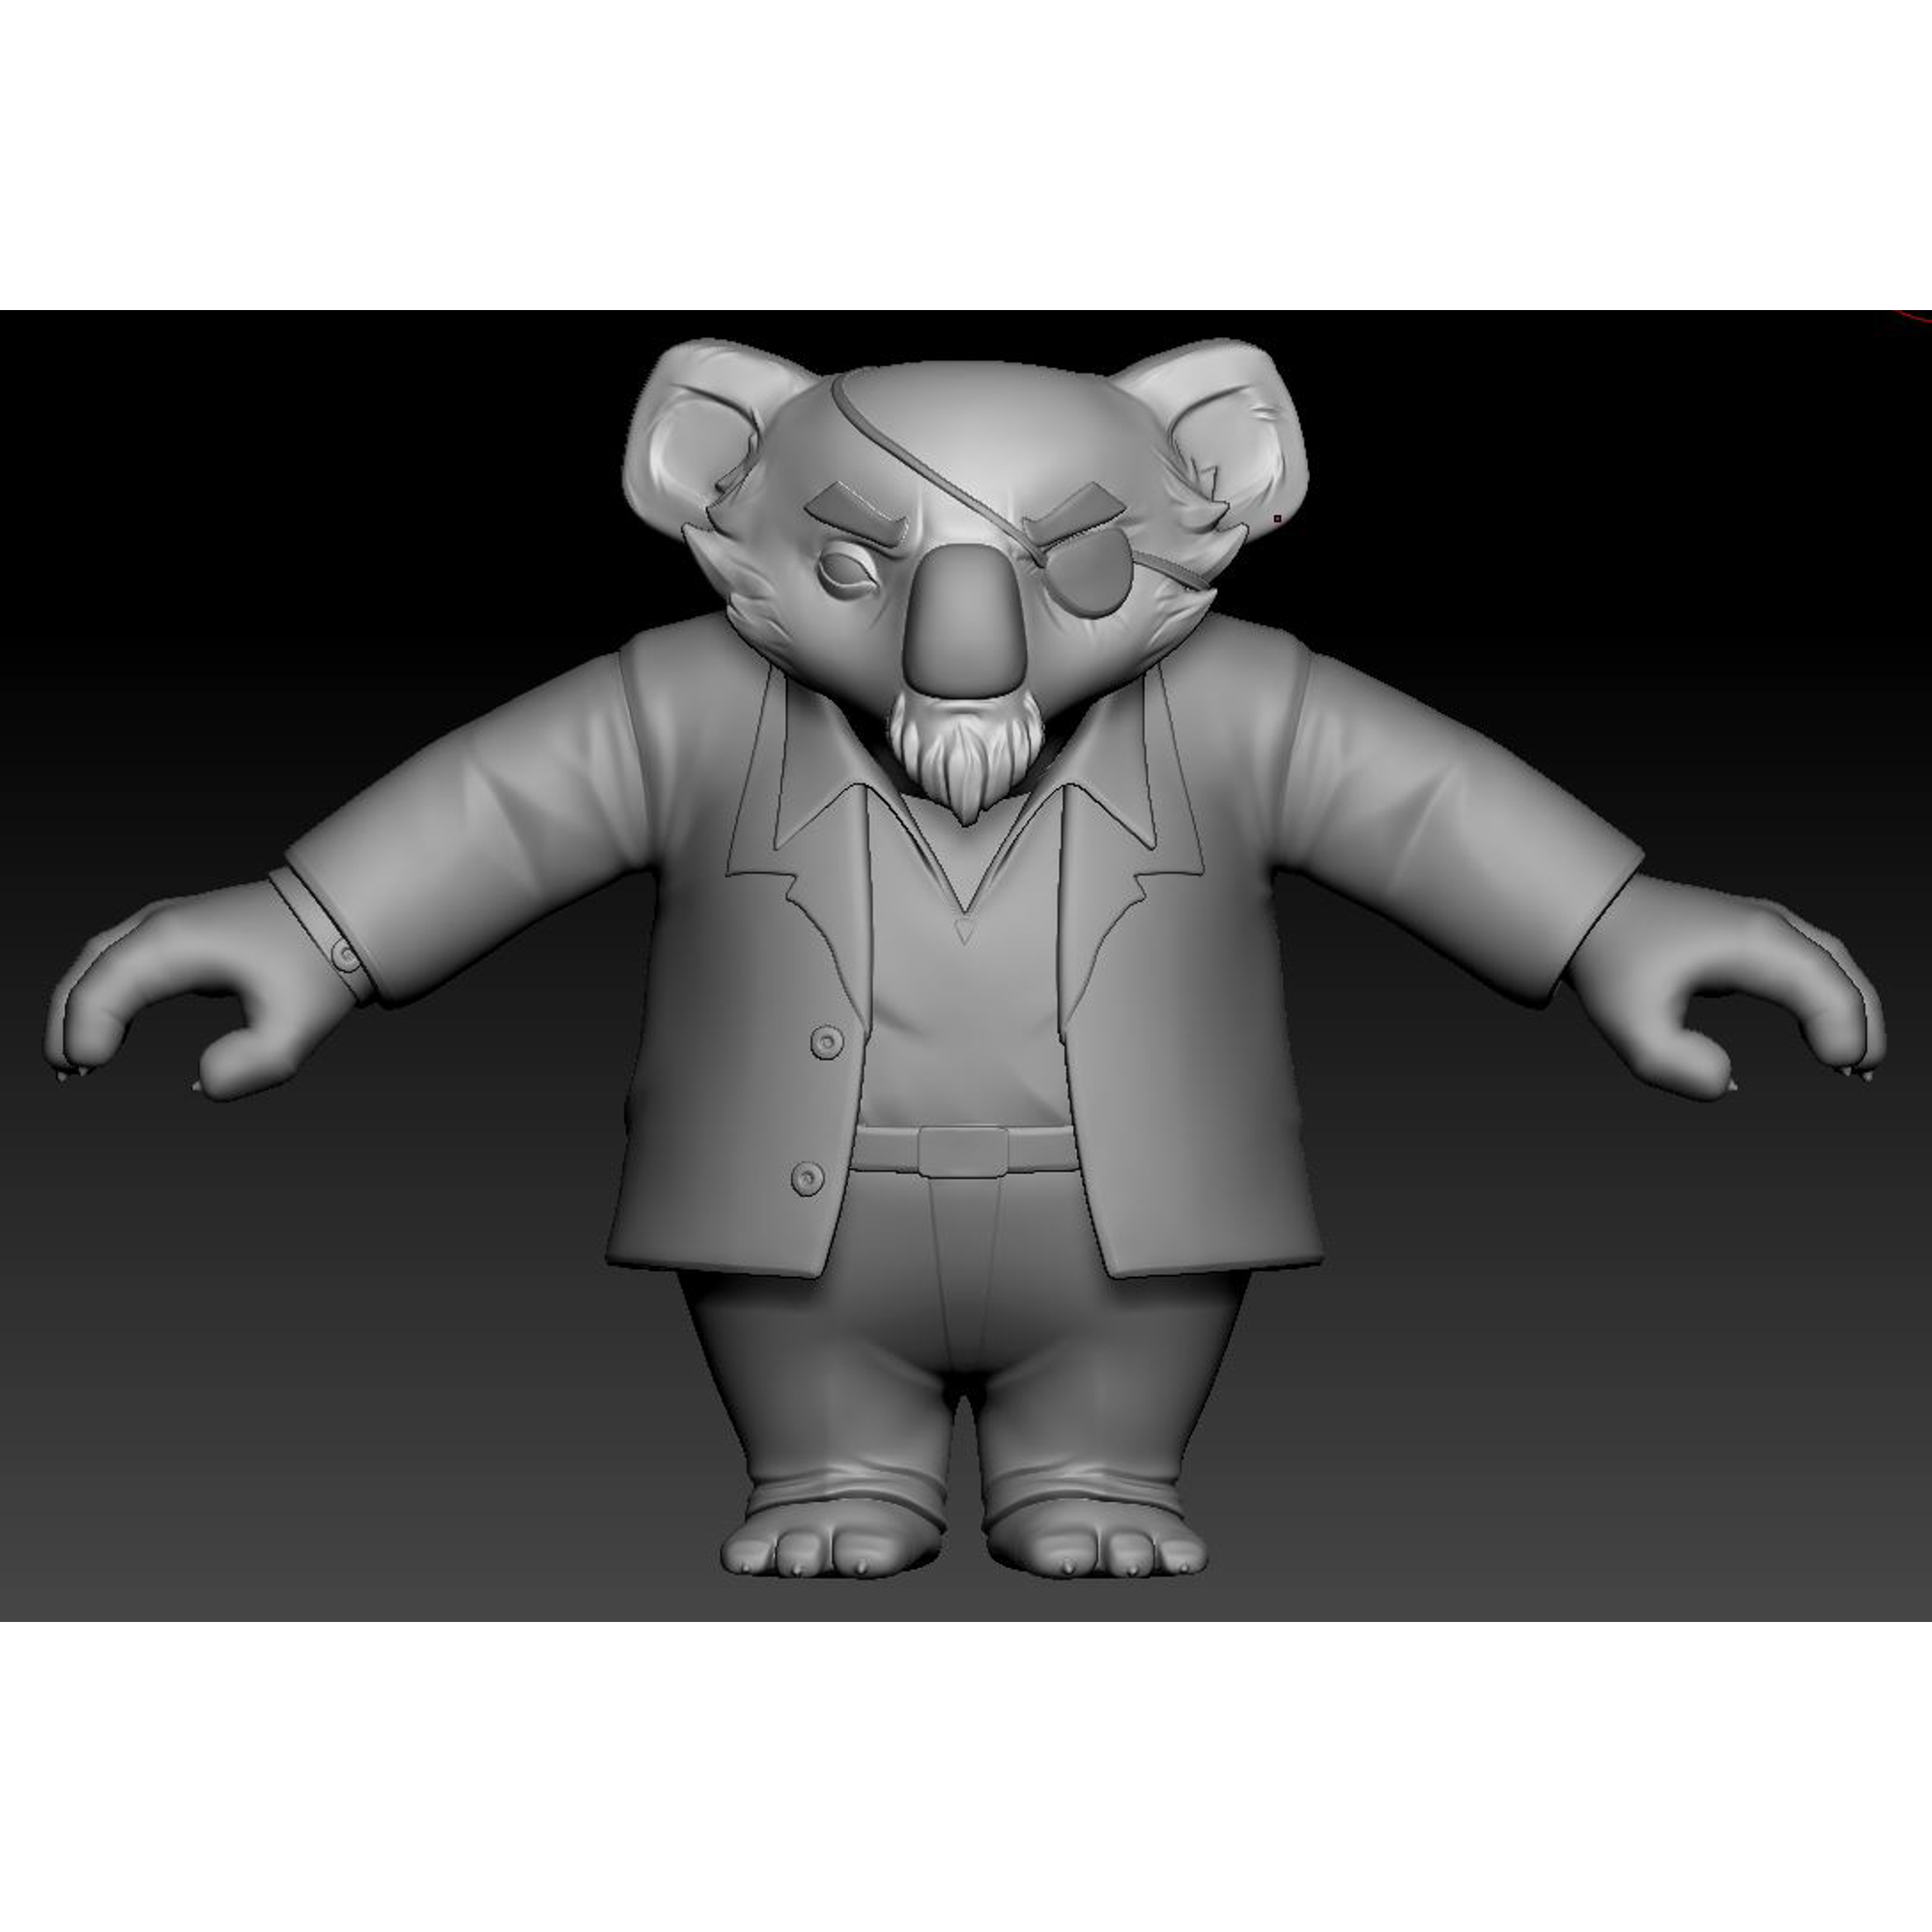 Mr-sin-koala-bigboss-front-2000-2000